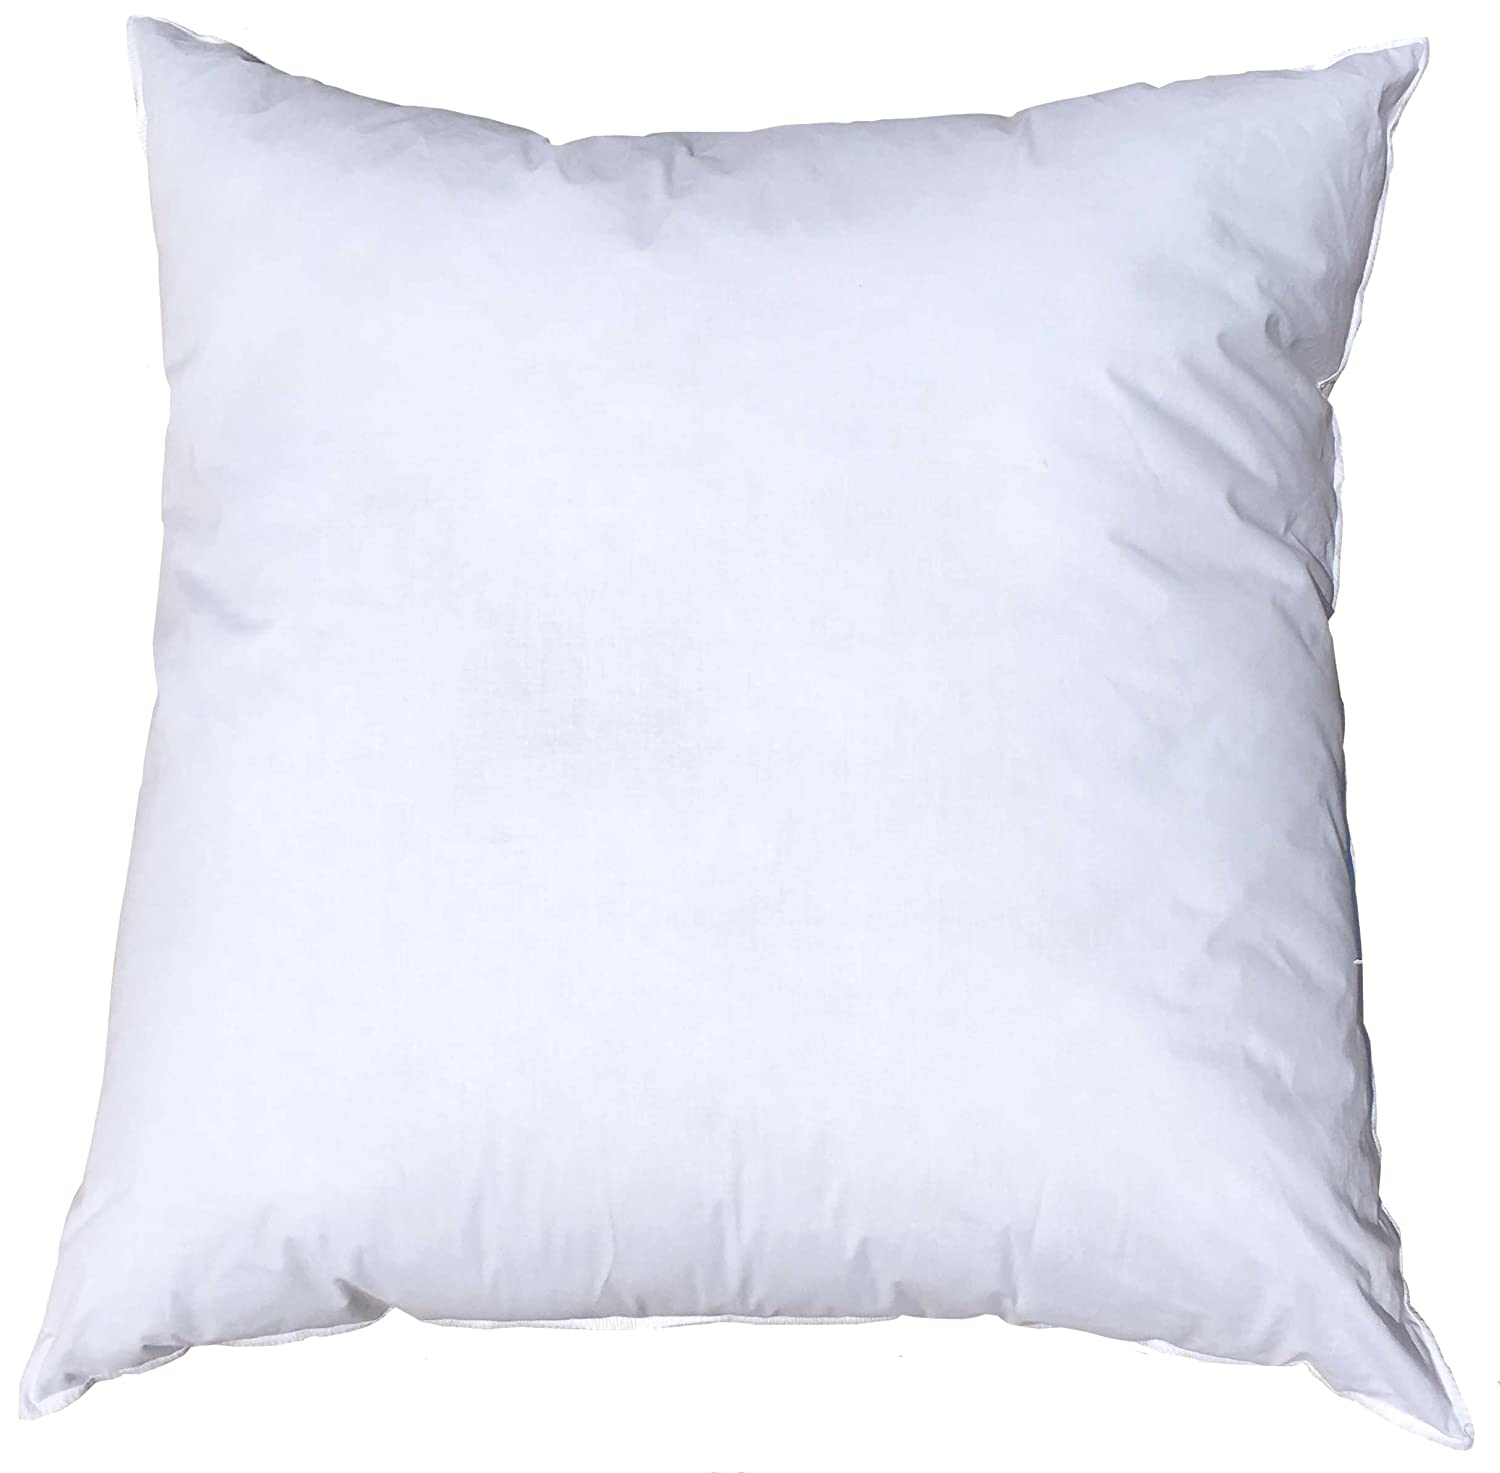 Pillowflex 11x11 Inch Premium Polyester Filled Pillow Form Insert - Machine Washable - Square - Made In USA 11x11PC